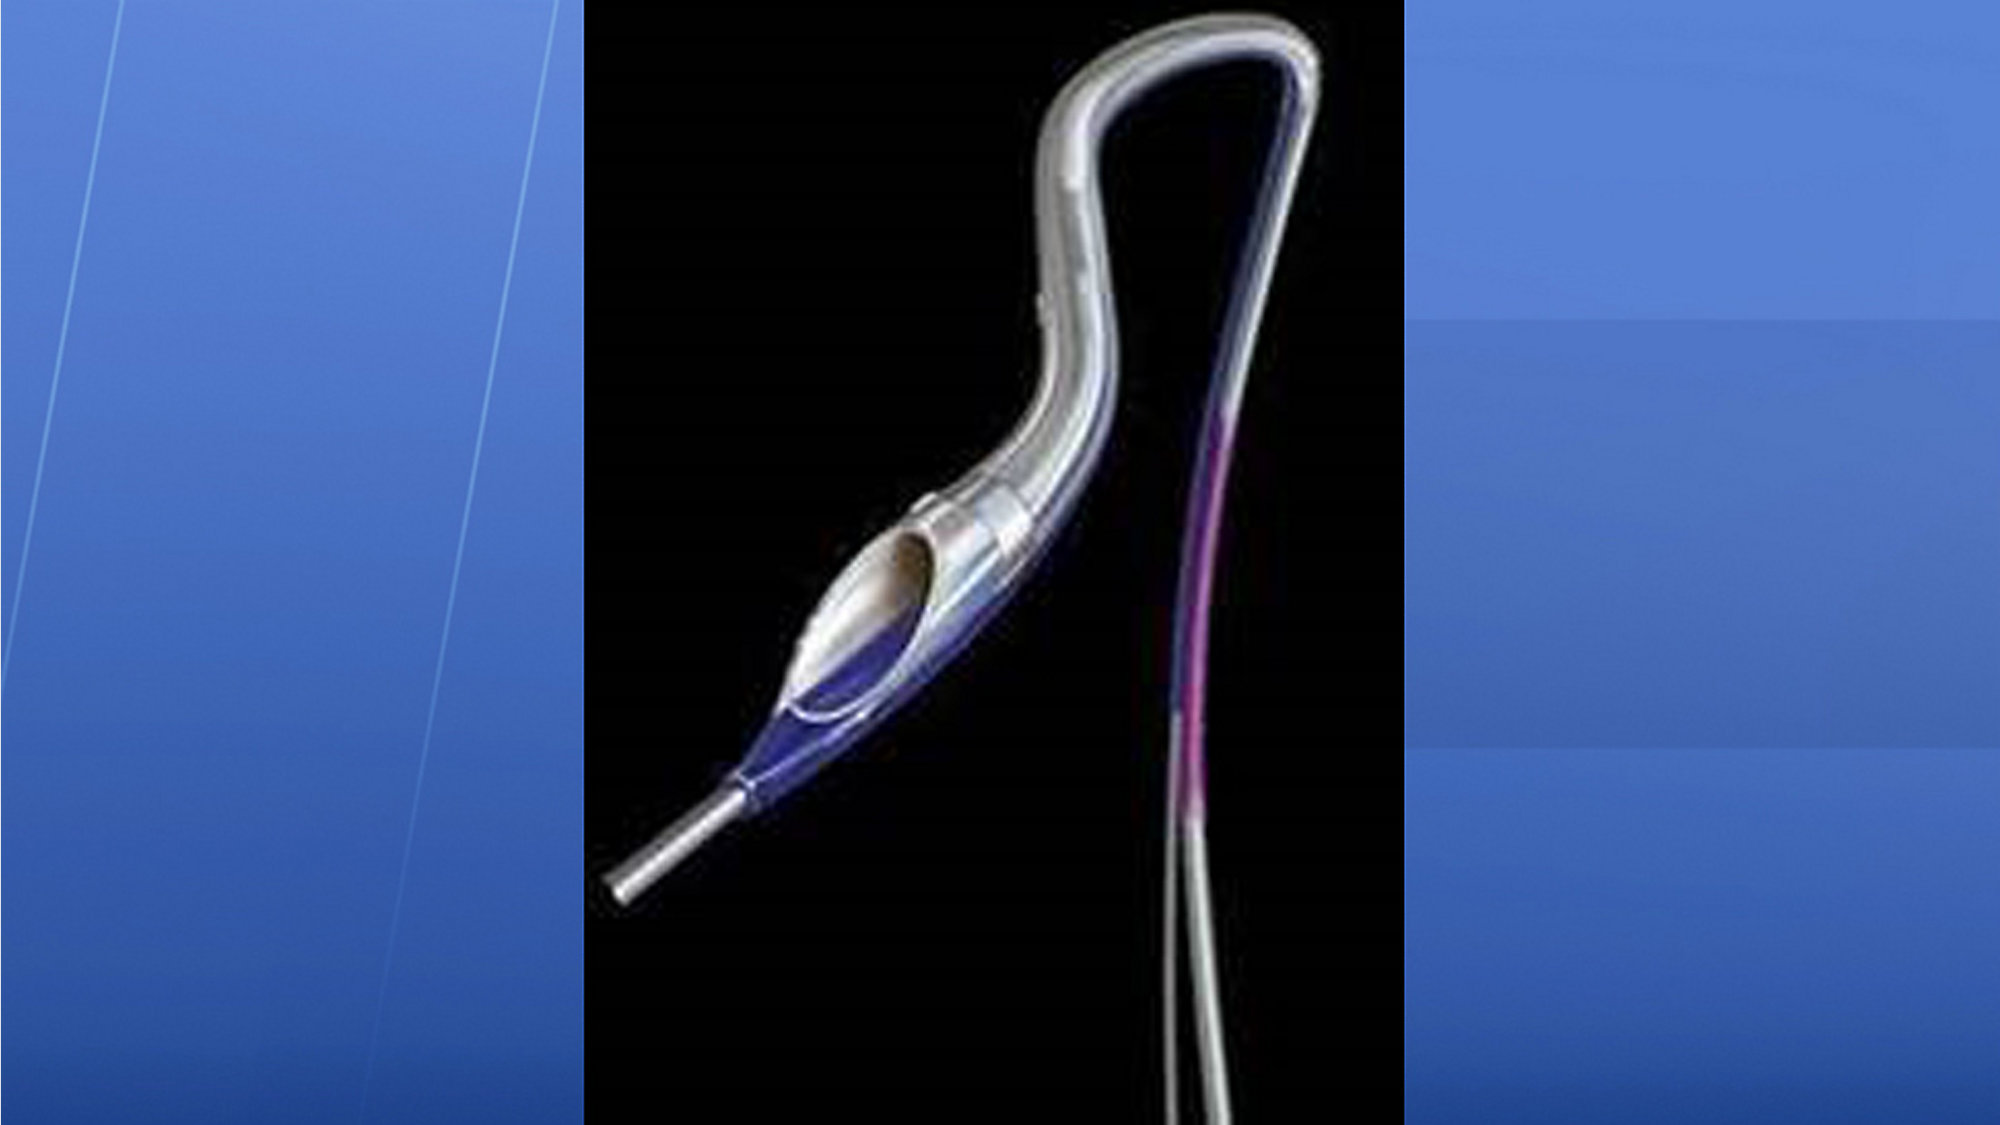 New tool at Largo Medical to remove blood clots in heart